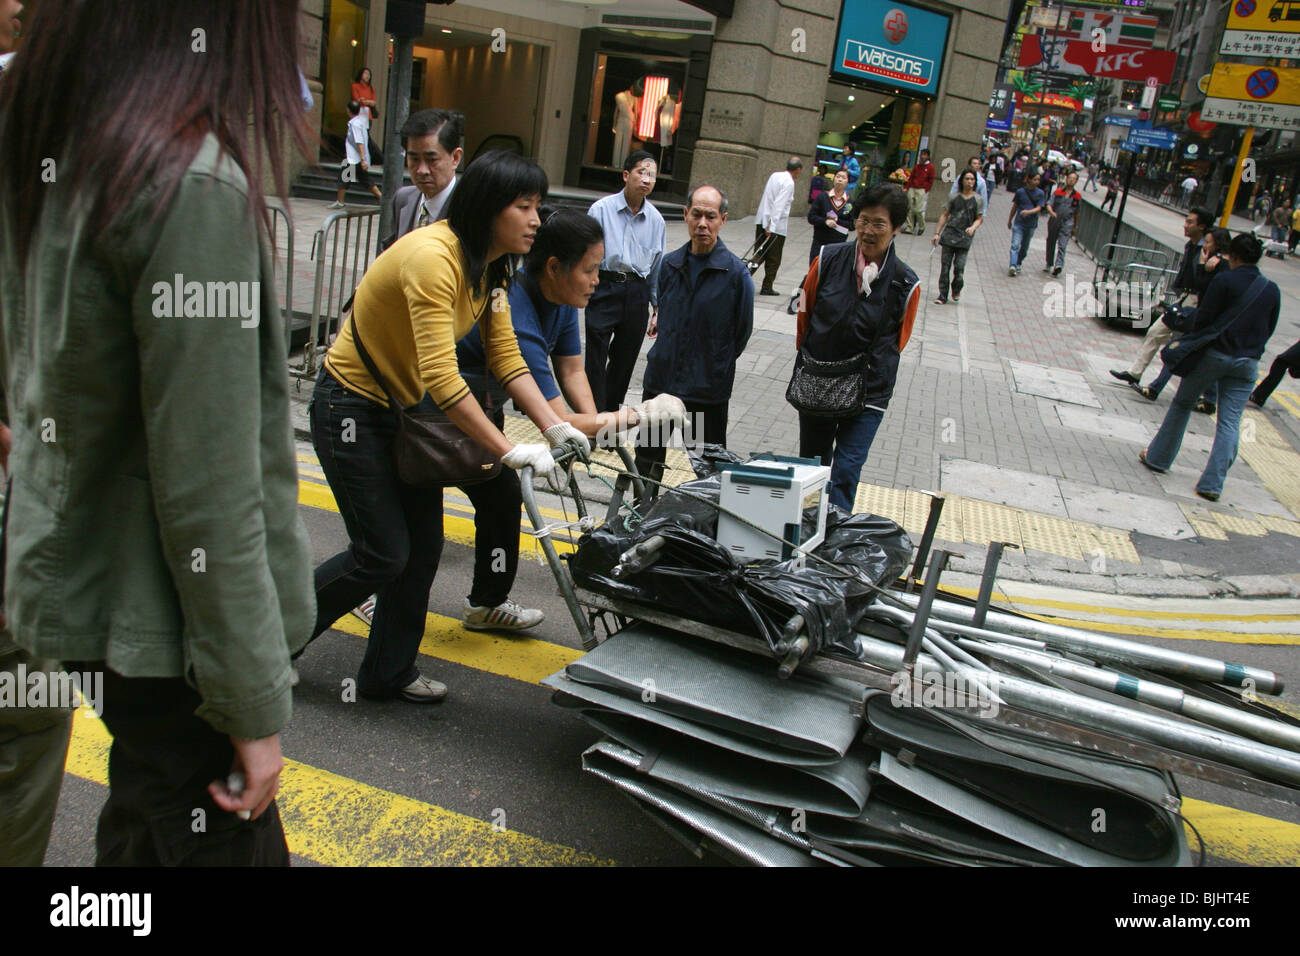 Two women pushing a cart laden with scrap metal through a street in Central district, Hong Kong Island, China - Stock Image